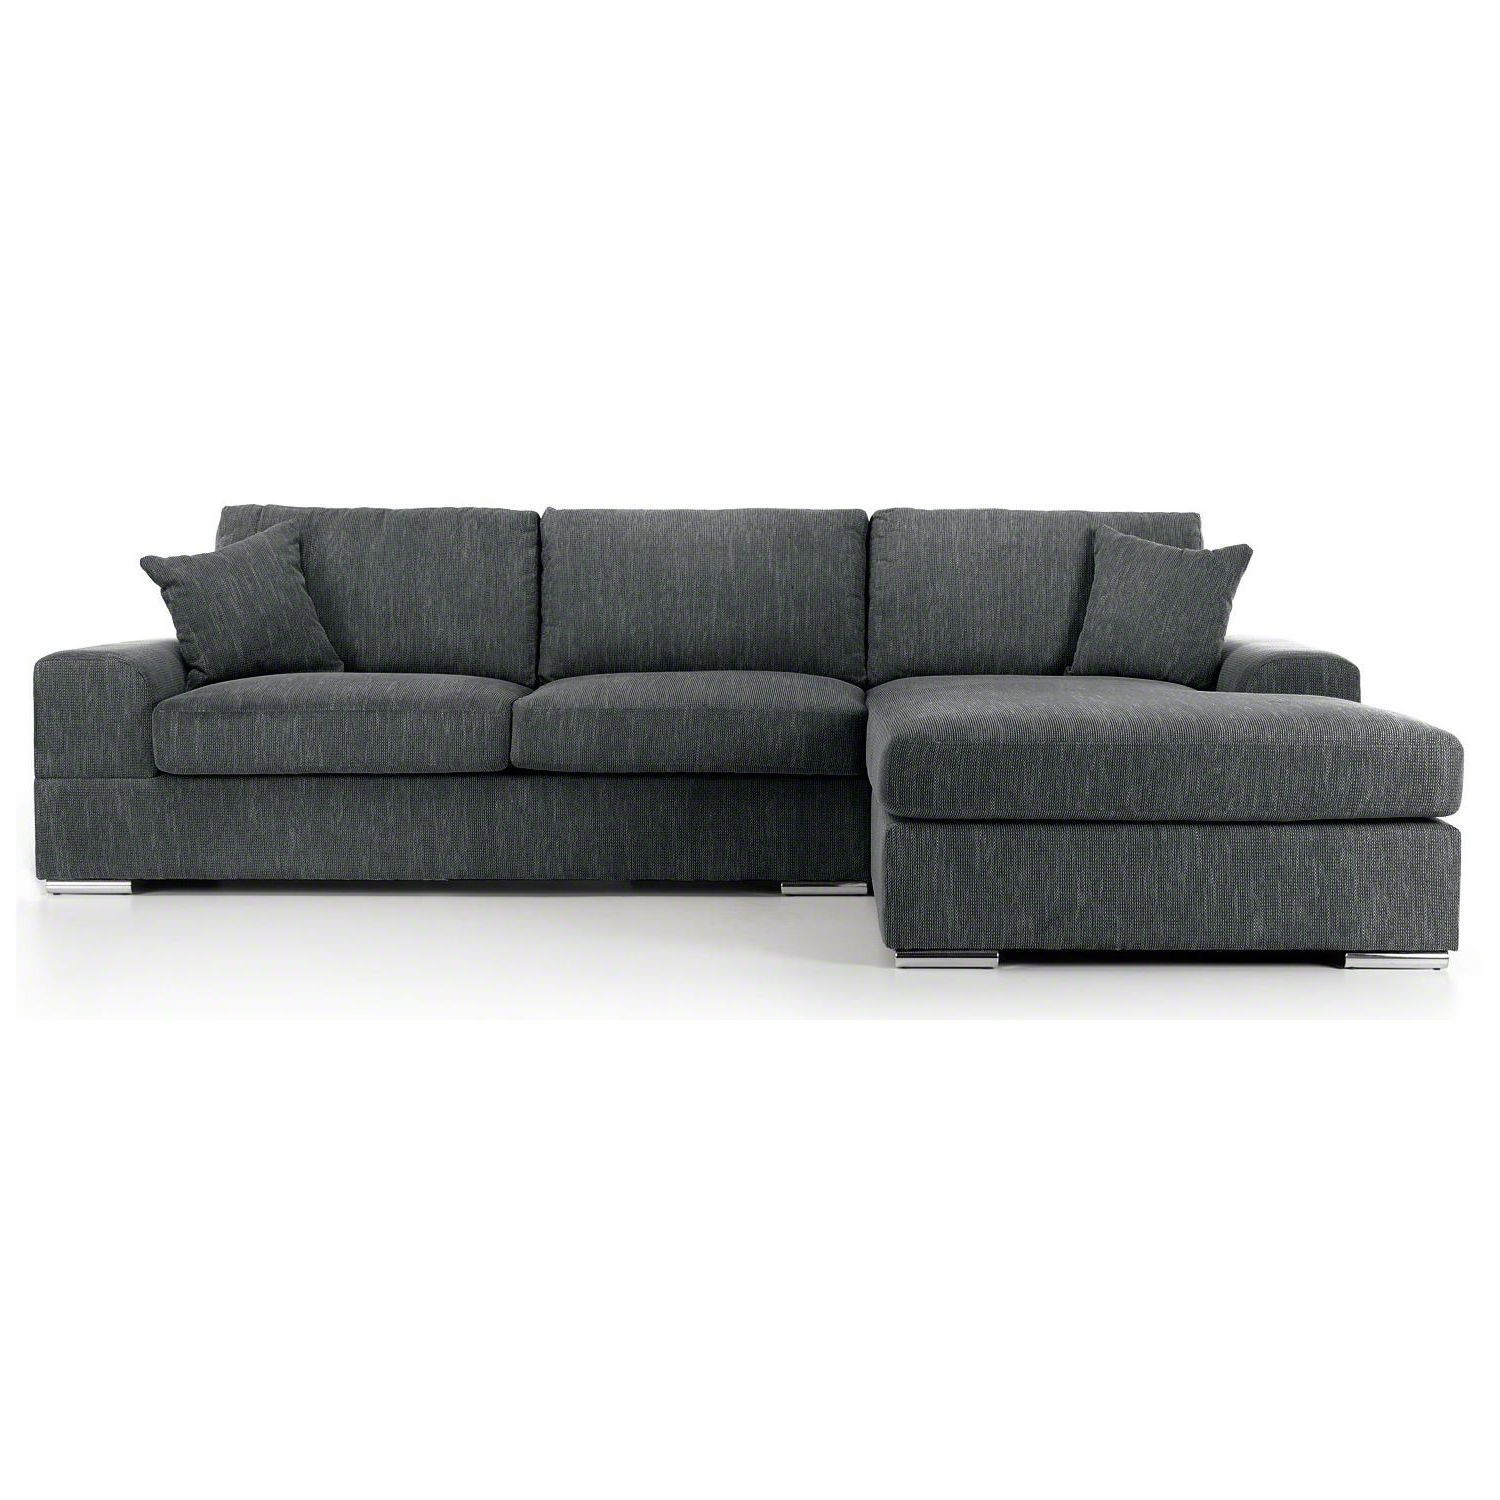 Vedori Corner Sofa Next Day Delivery Vedori Corner Sofa Corner Sofa Next Corner Sofa Lavish Living Room